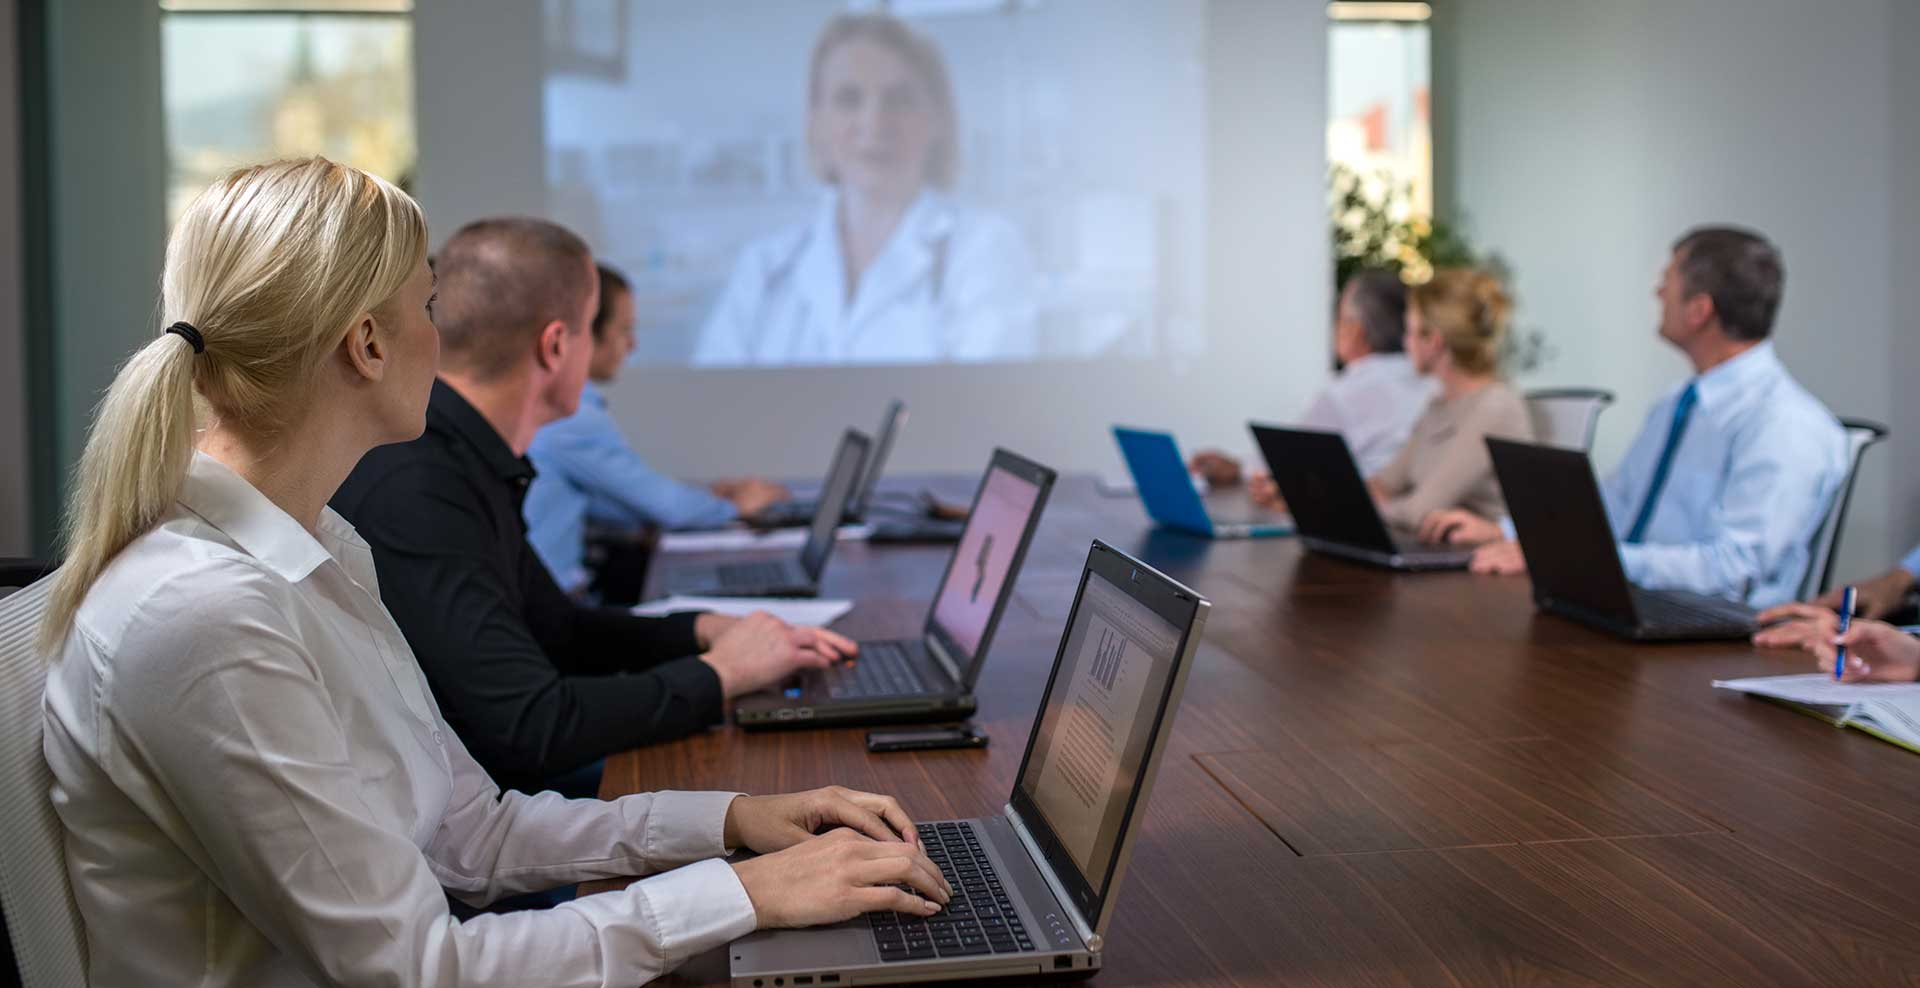 image showing a board room with 8 people with laptops and having a video conference on a large screen in front of them